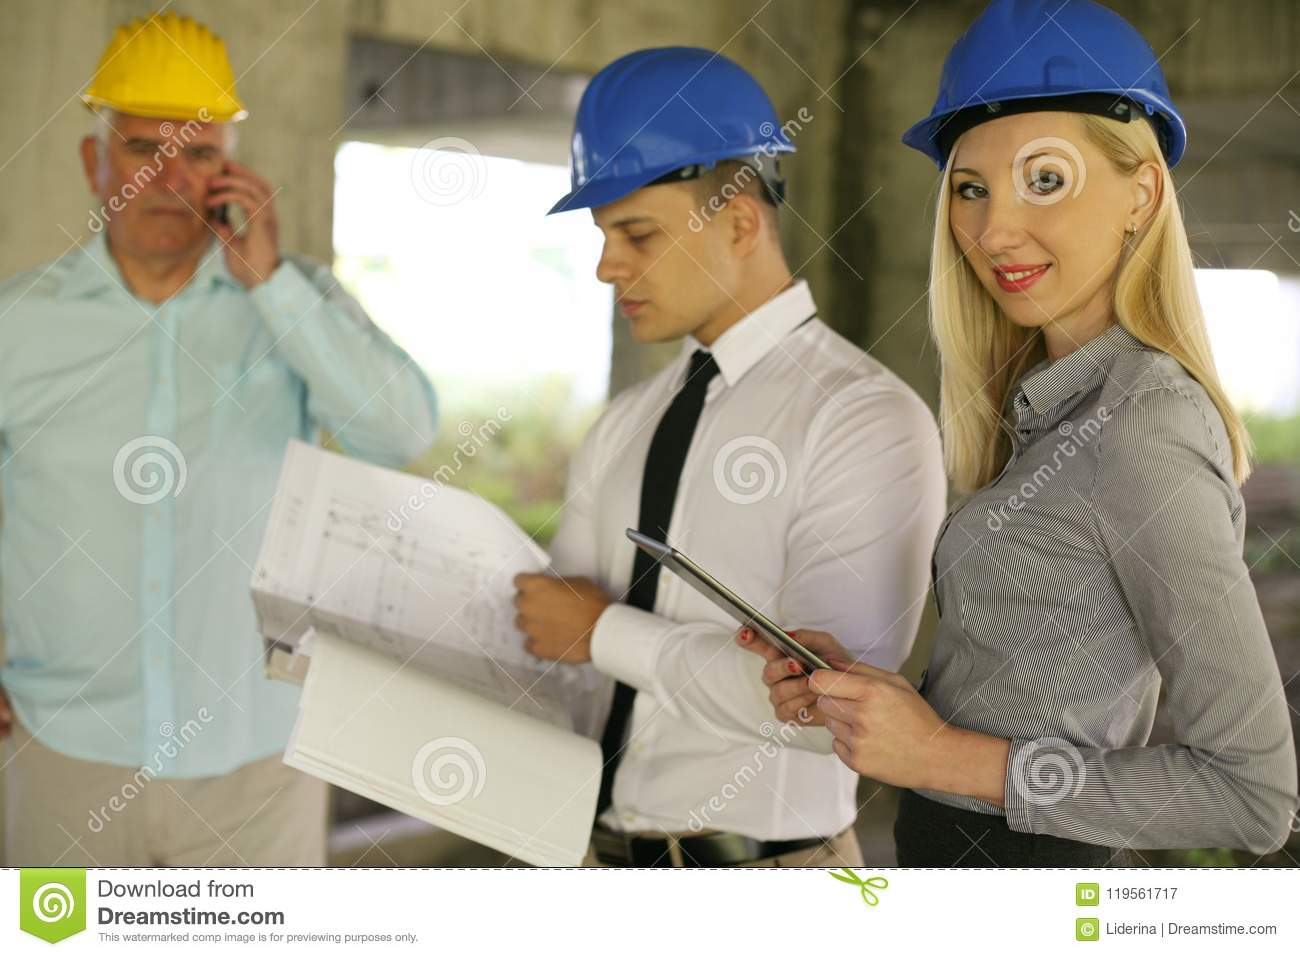 Group of professional construction managers.